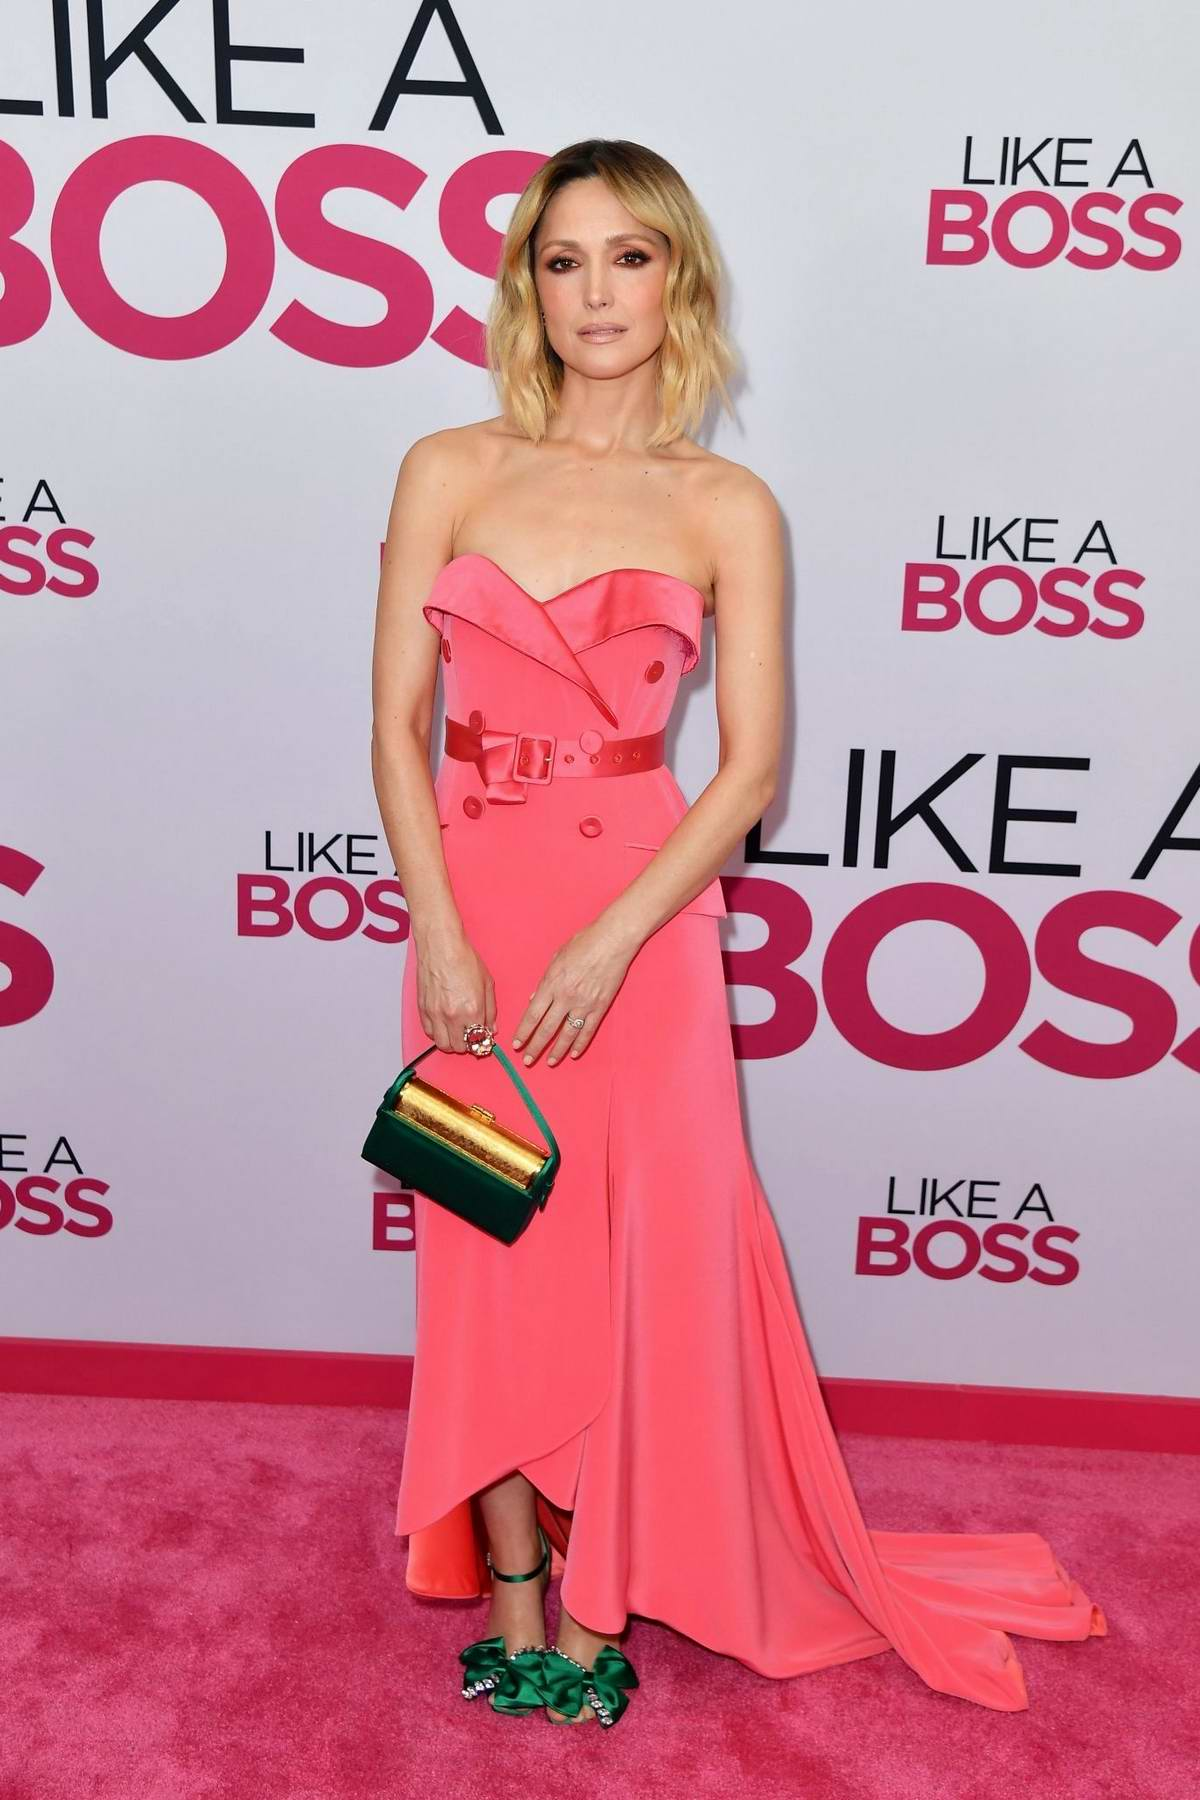 Rose Byrne attends the World Premiere of 'Like A Boss' in New York City